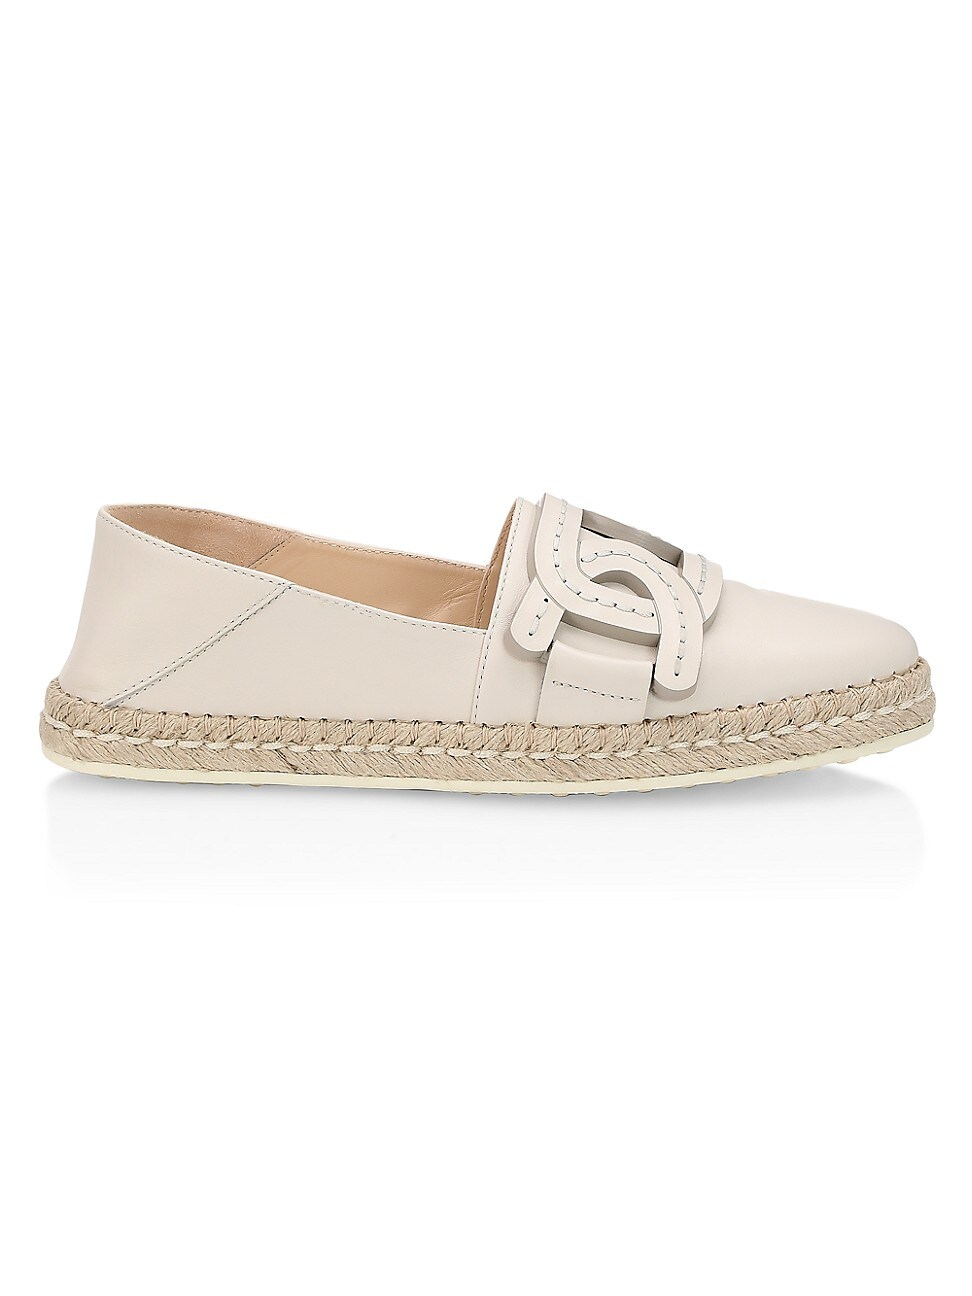 Tod's WOMEN'S KATE LEATHER ESPADRILLES